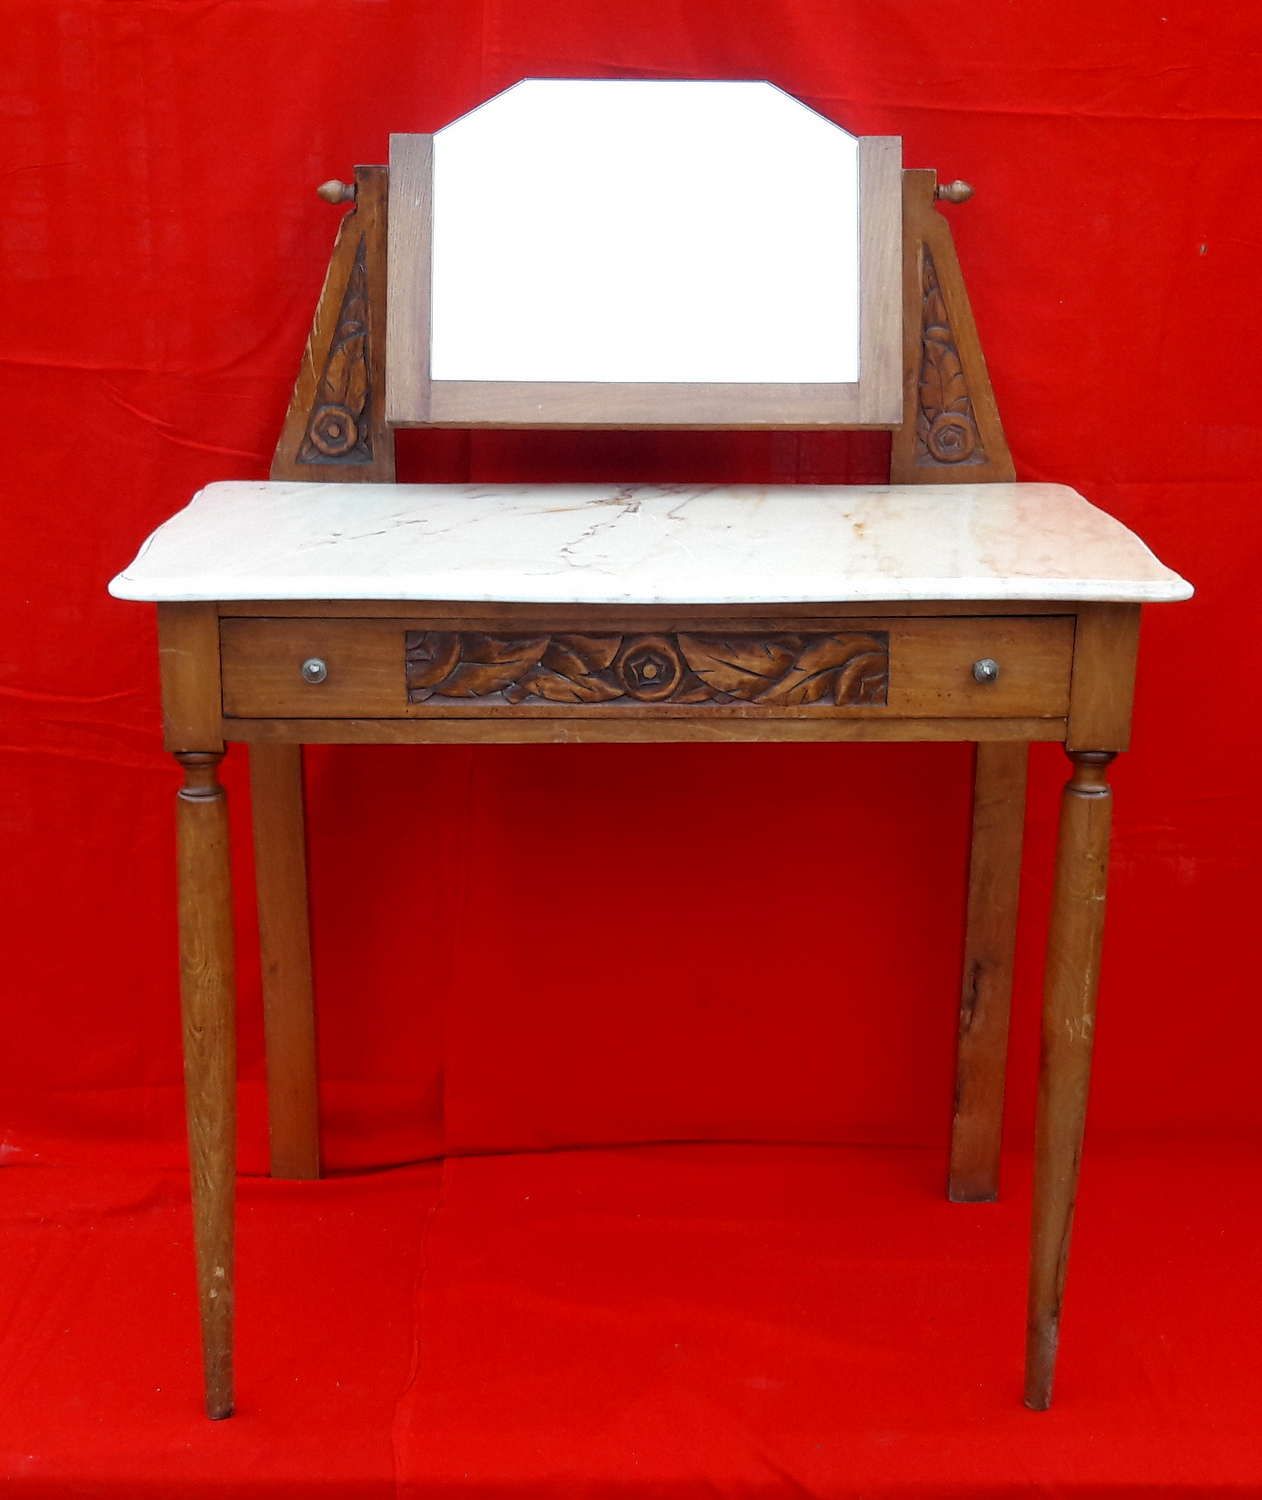 TABLE DE TOILETTE ART DECO / ART DECO WASHSTAND TABLE